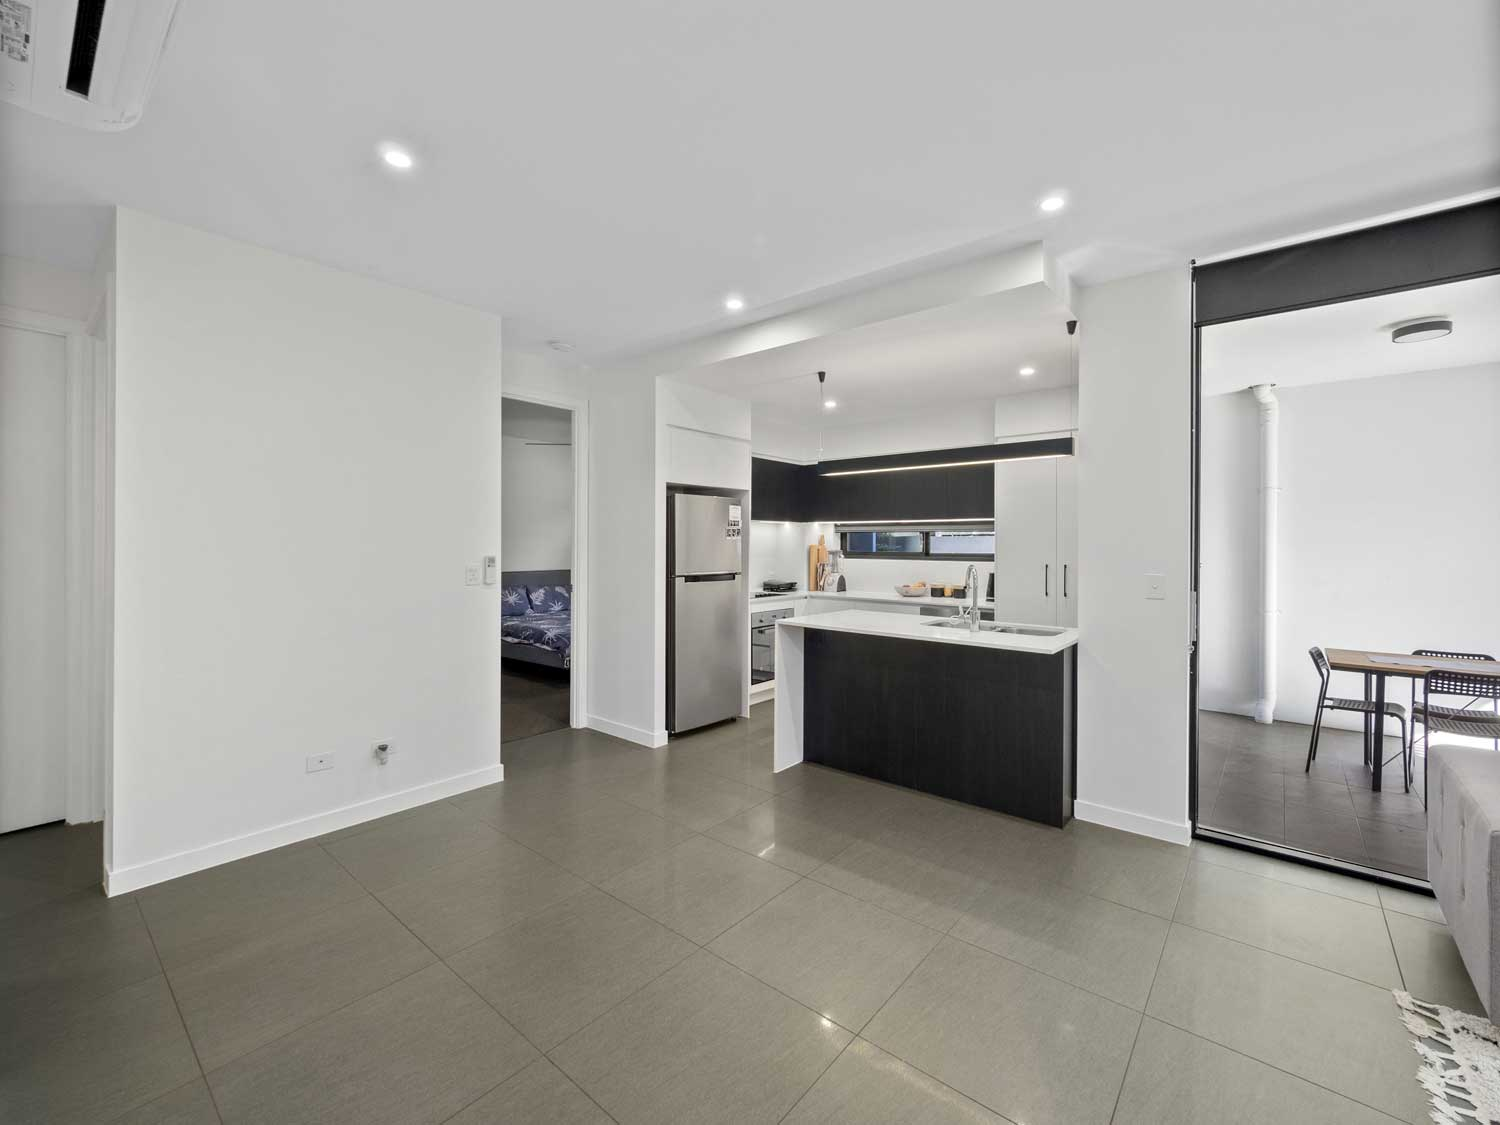 The dining area without virtual furniture - Apartment photography at Upper Mt Gravatt